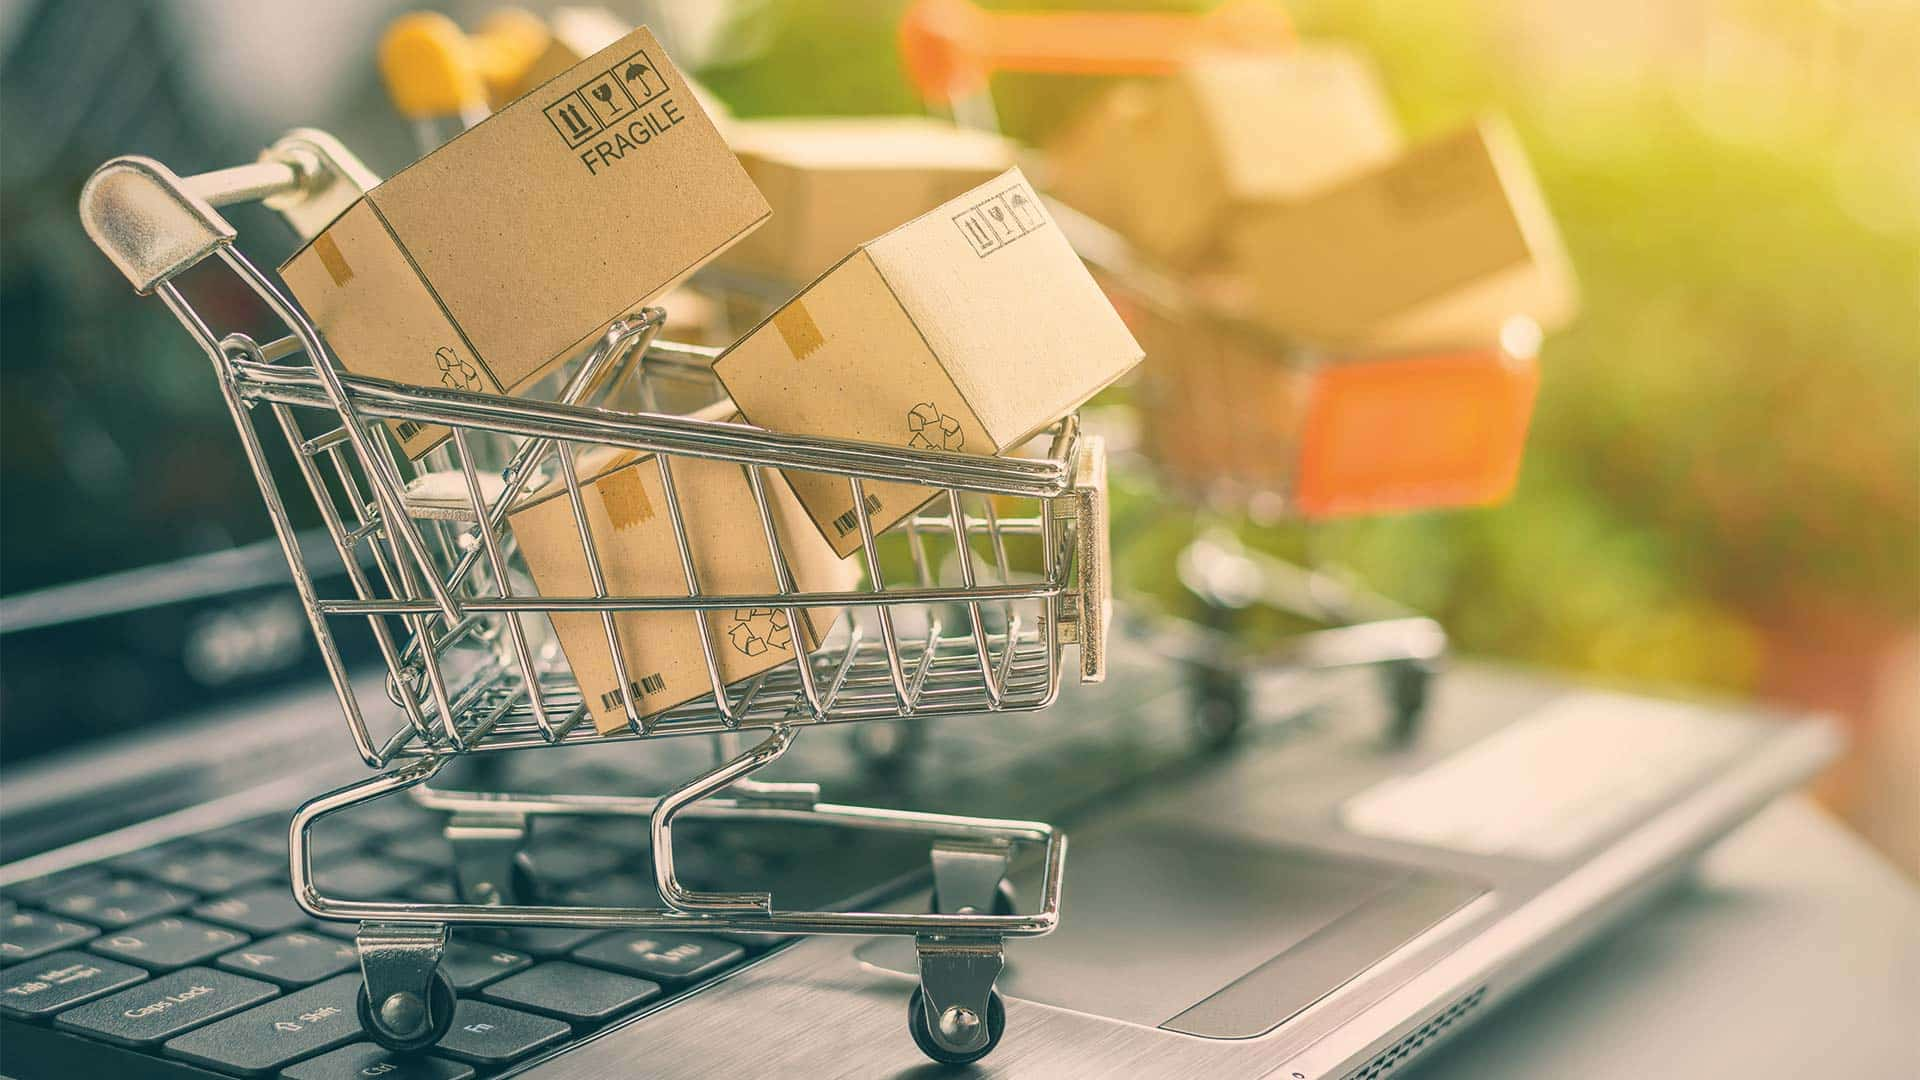 Waiting periods go up for e-commerce deliveries amid second wave